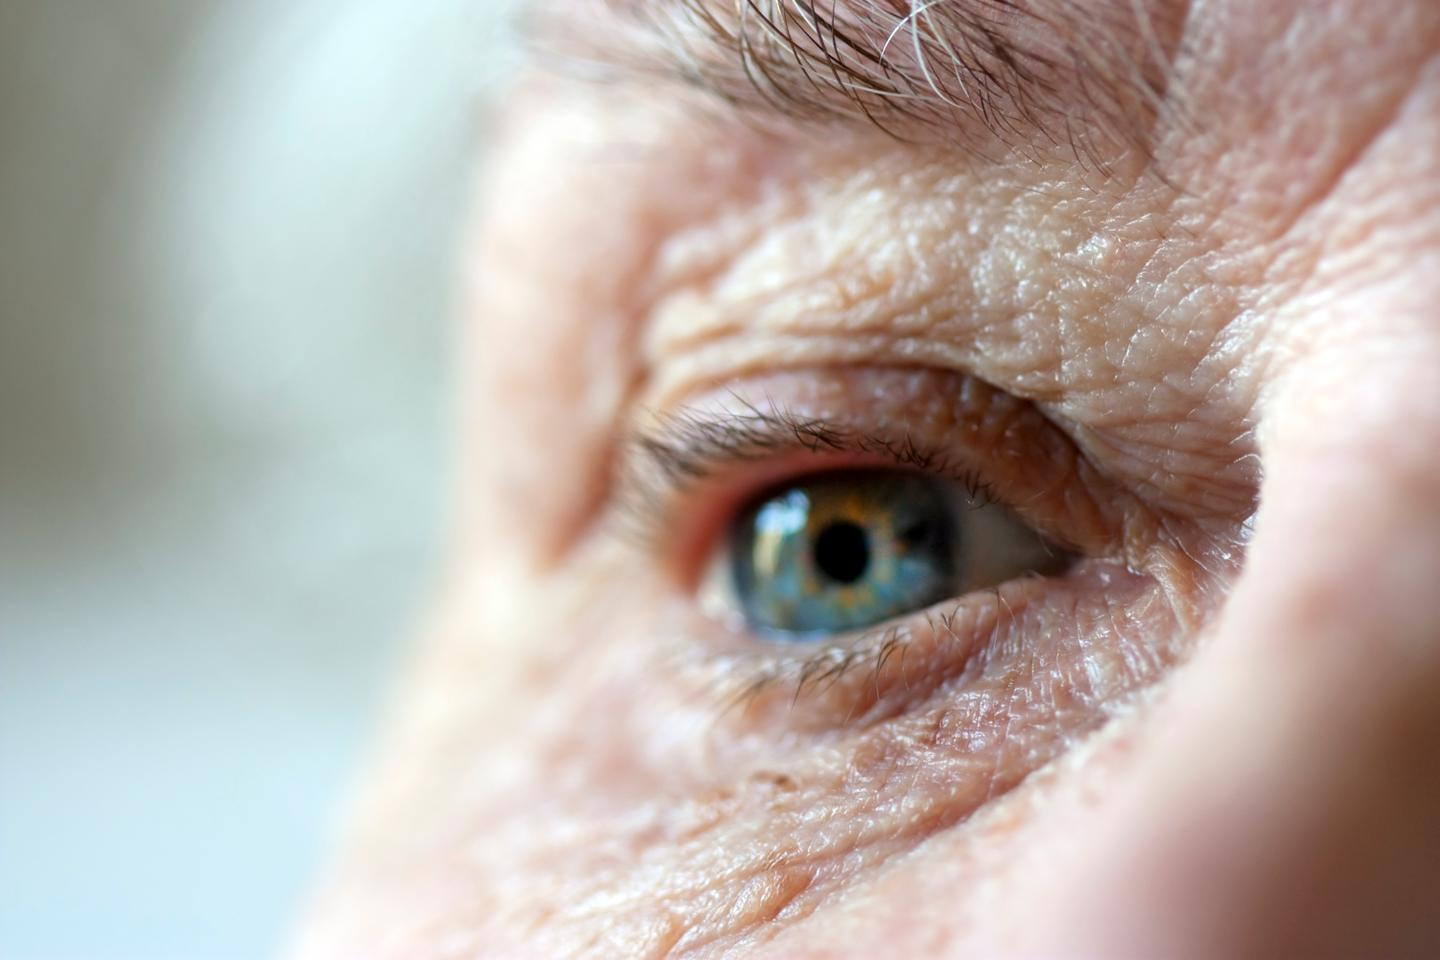 A new gene therapy has restored vision in mice with glaucoma or age-related vision loss